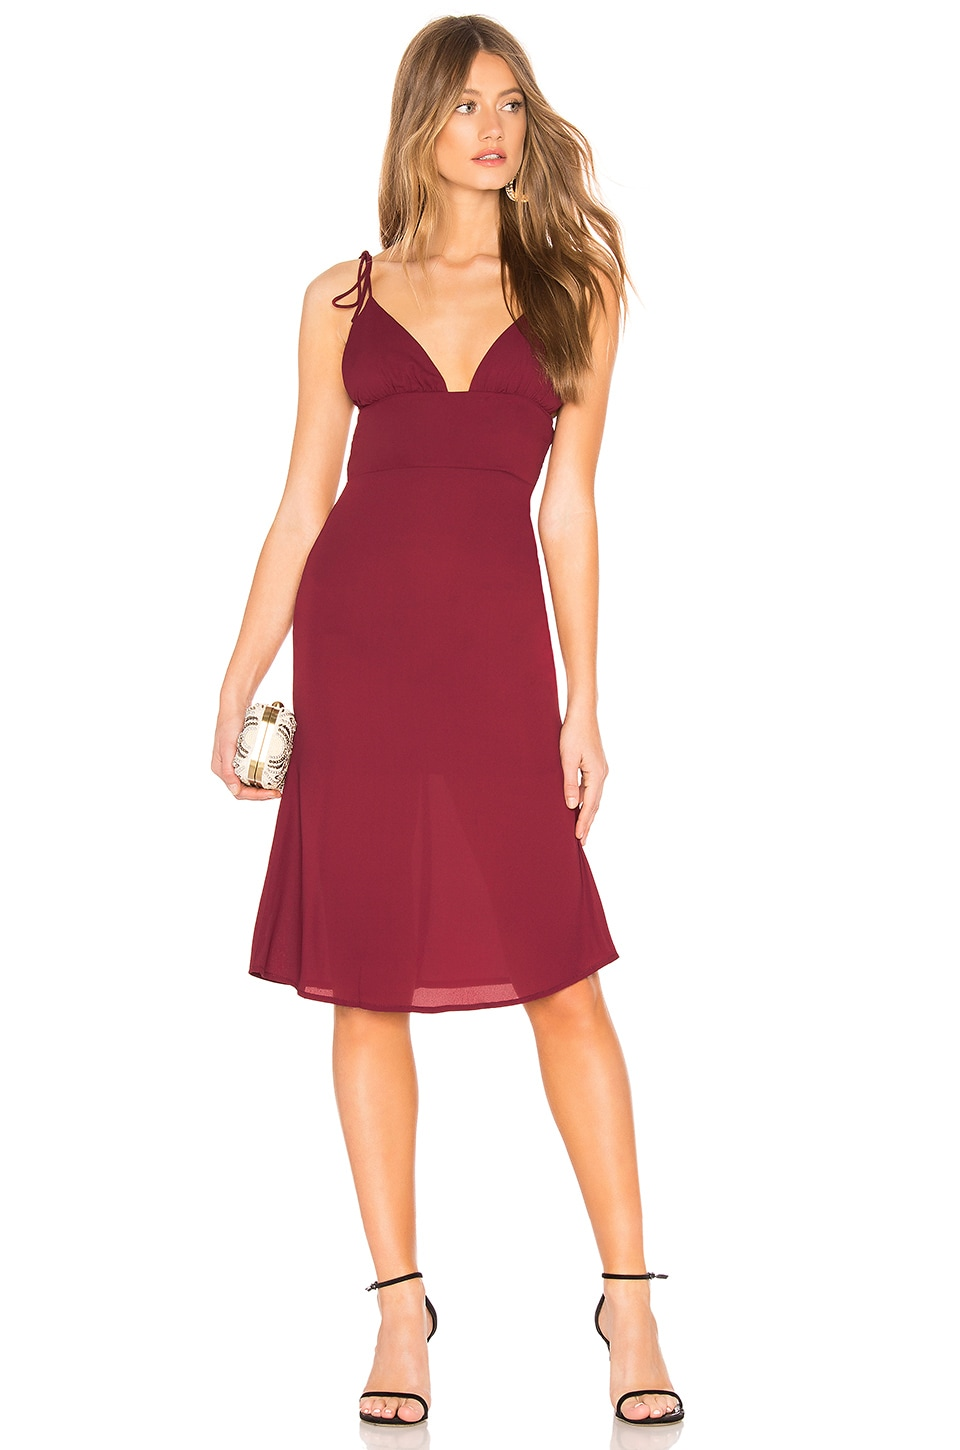 About Us Chloe Dress in Wine Red